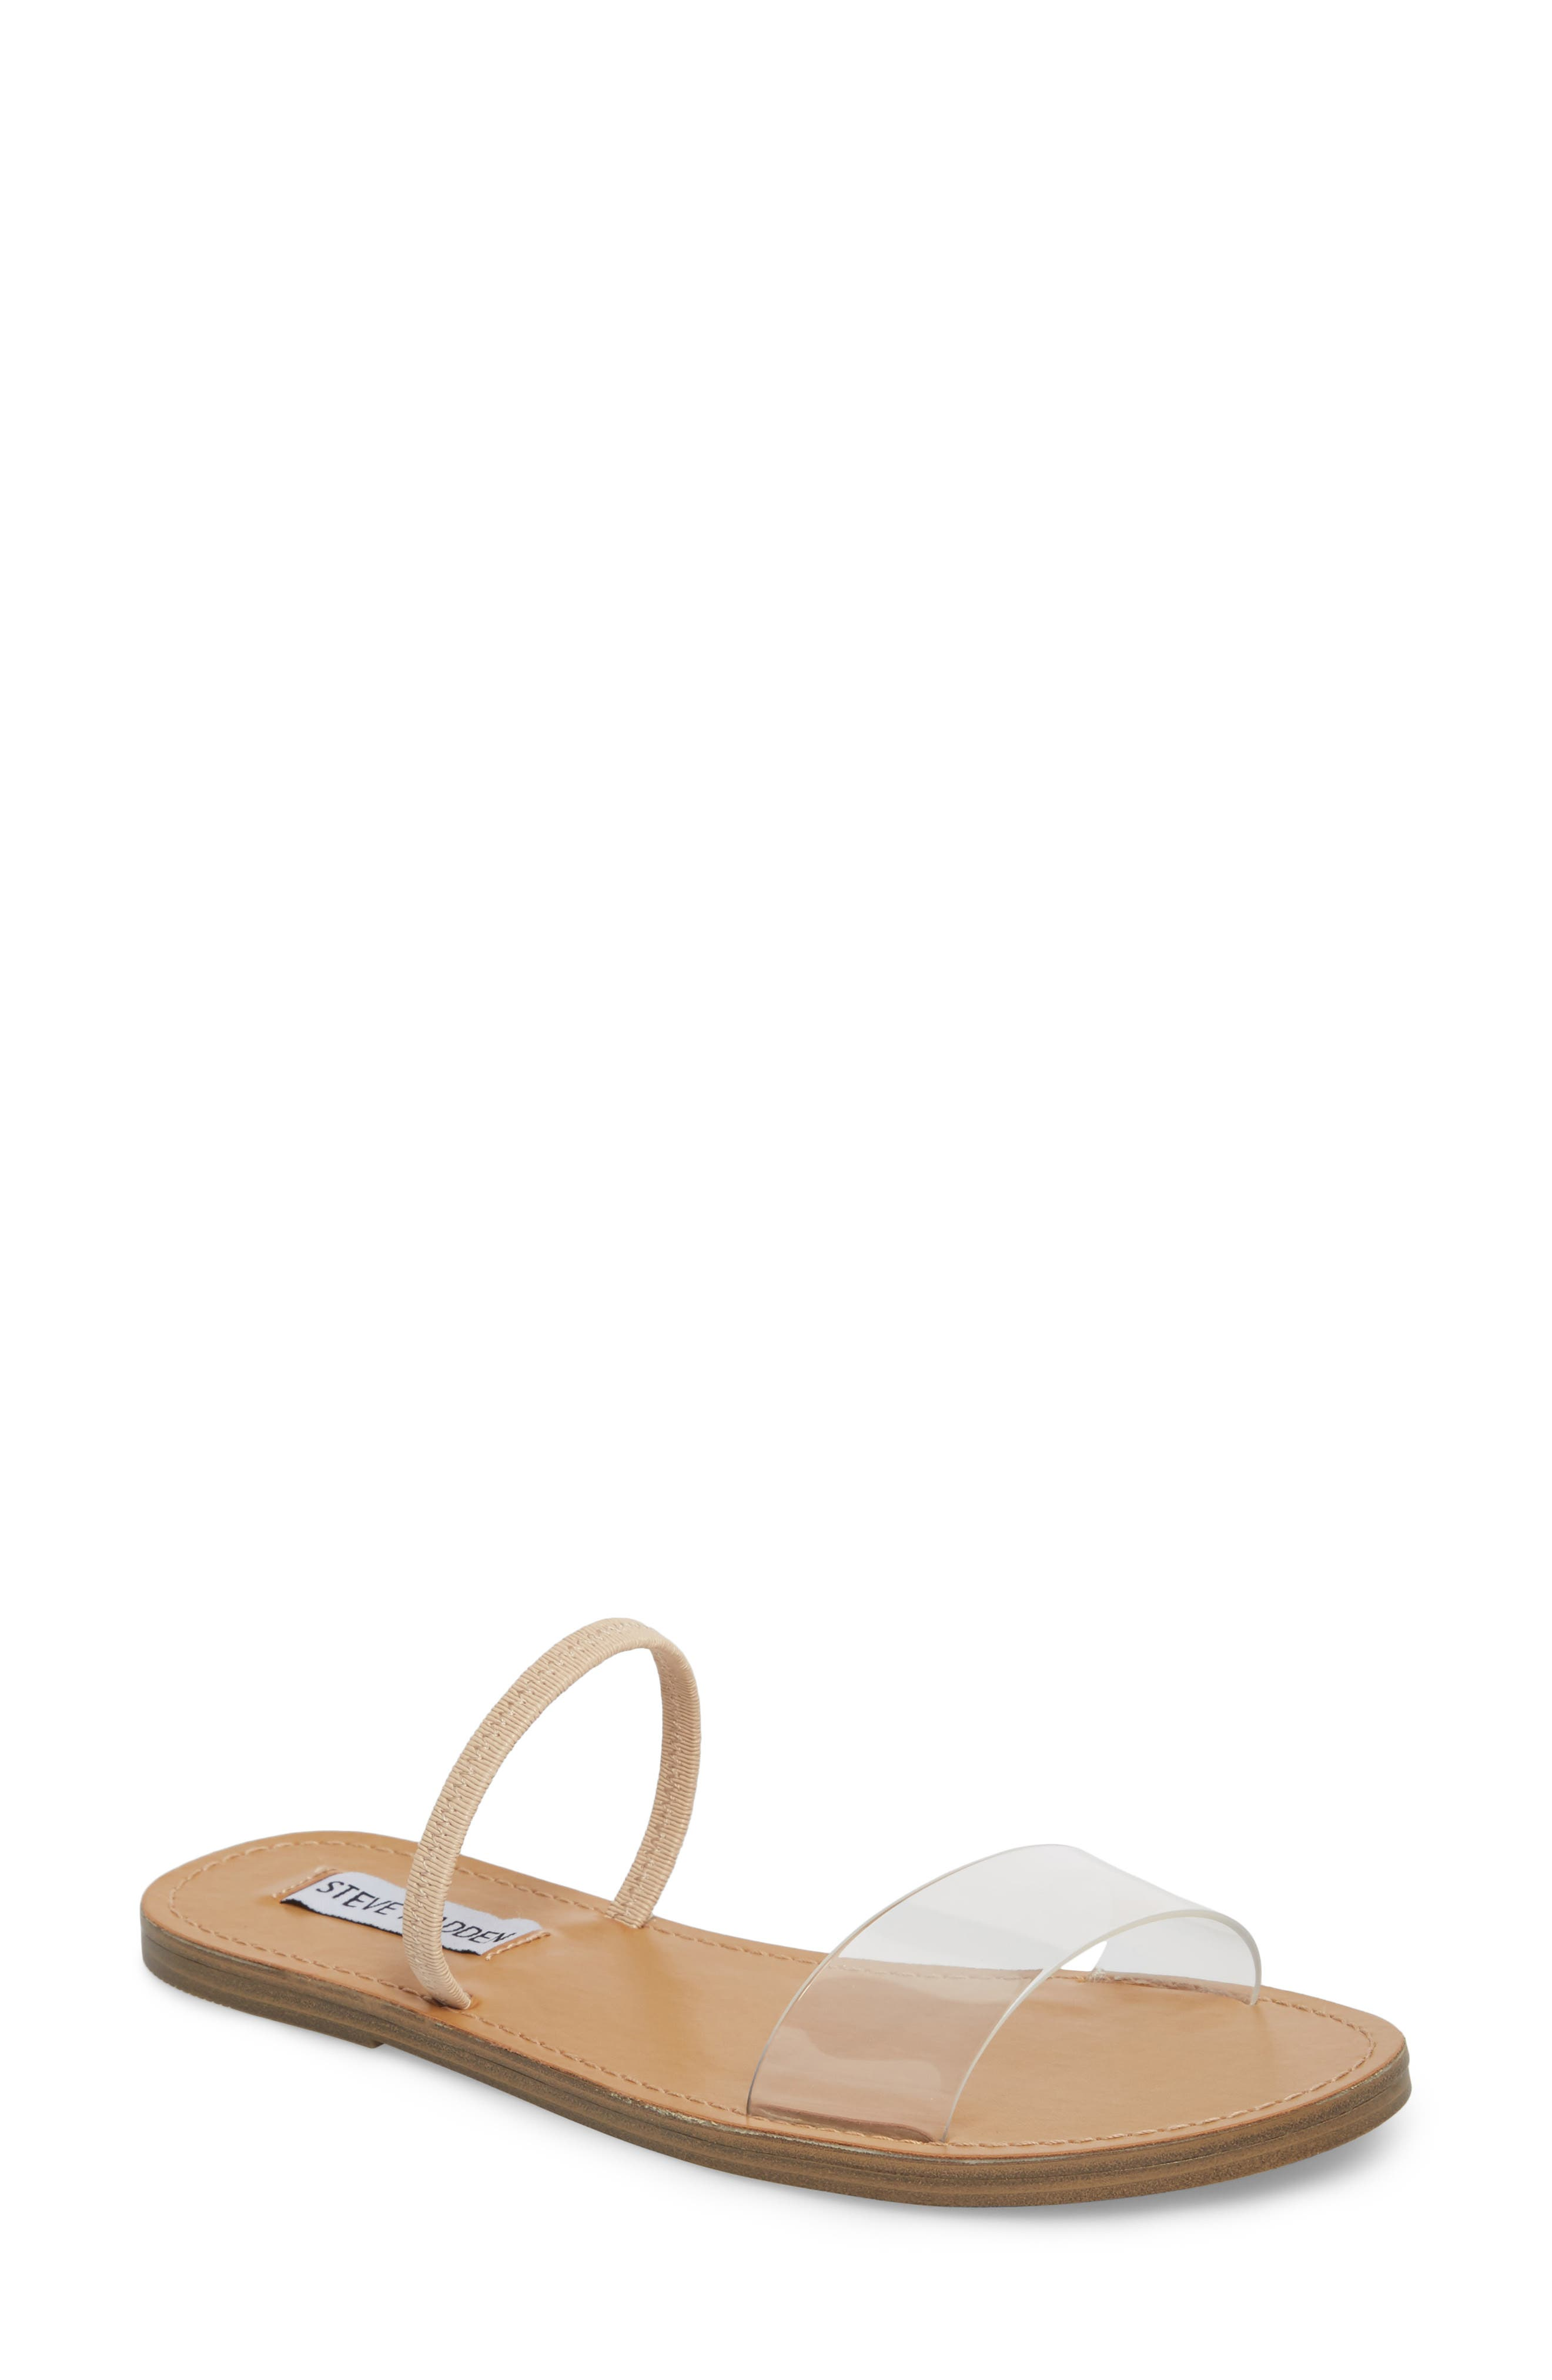 Dasha Strappy Slide Sandal,                         Main,                         color, Clear